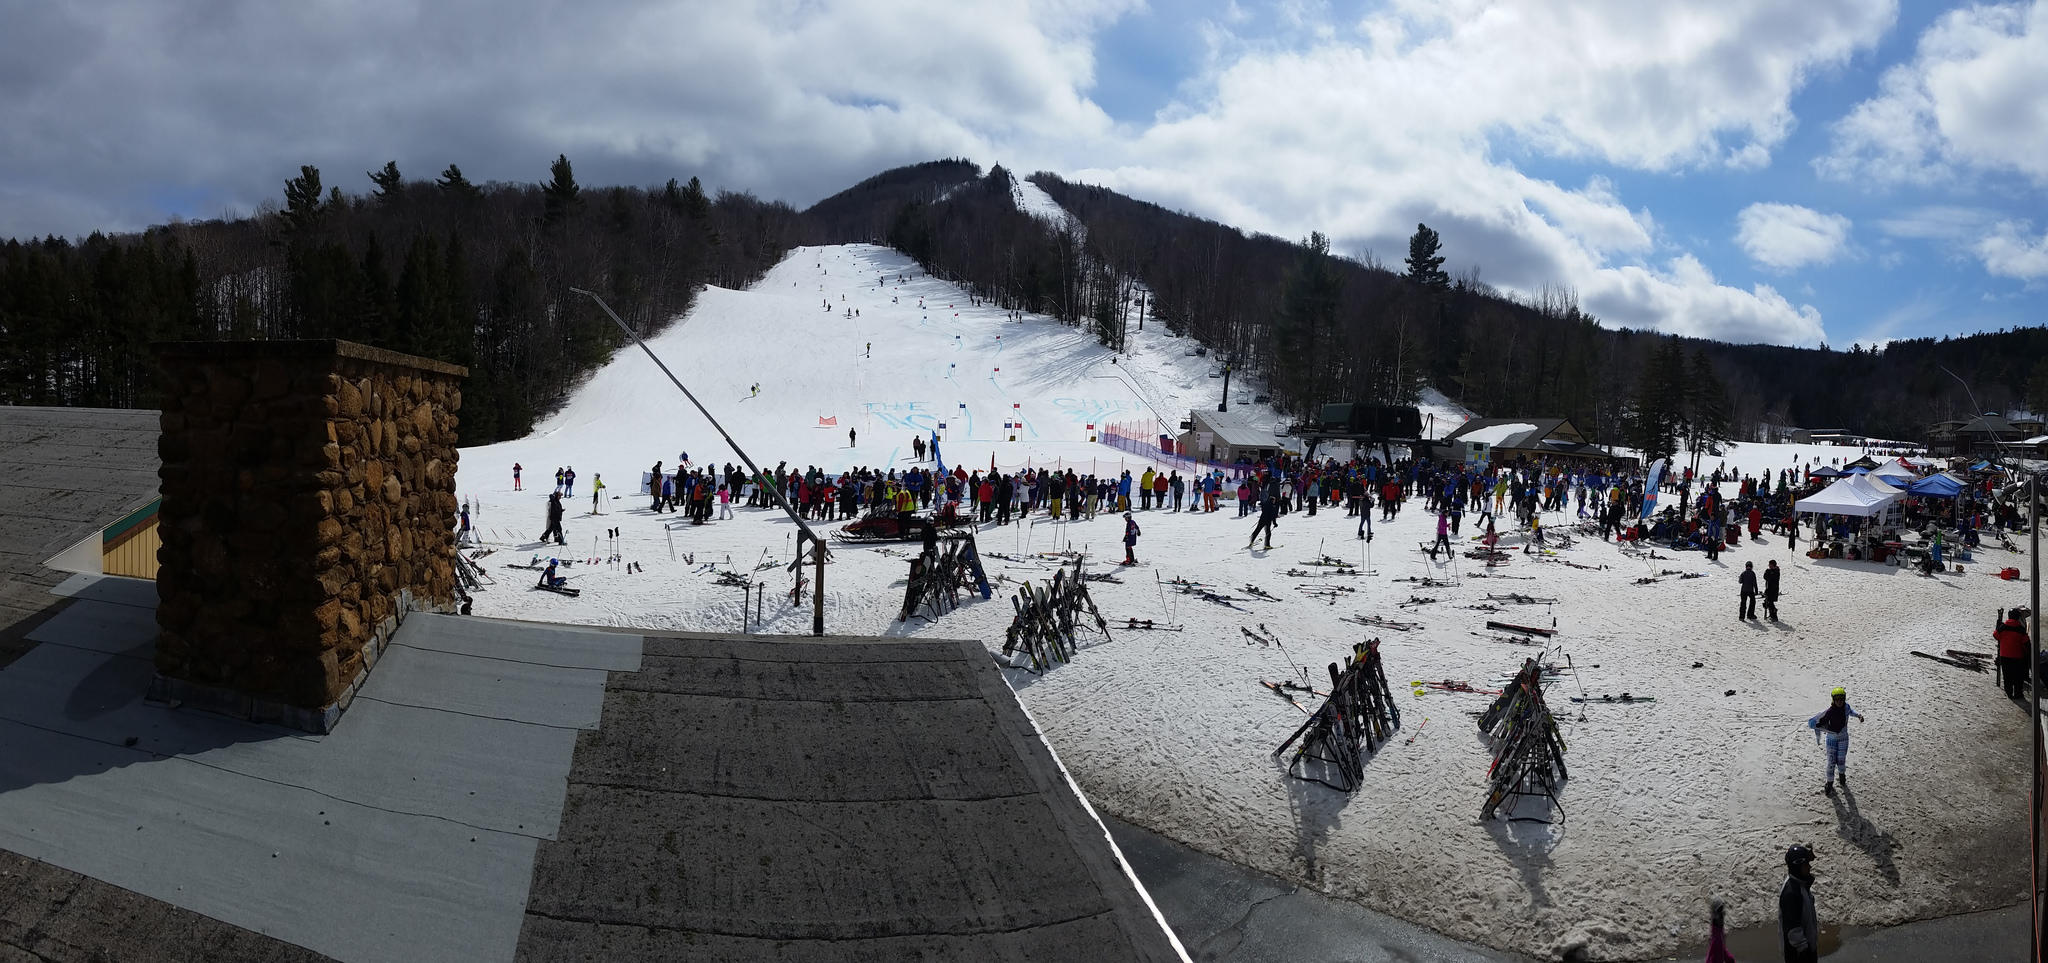 mount sunapee expansion clears major mogul on trail to approval